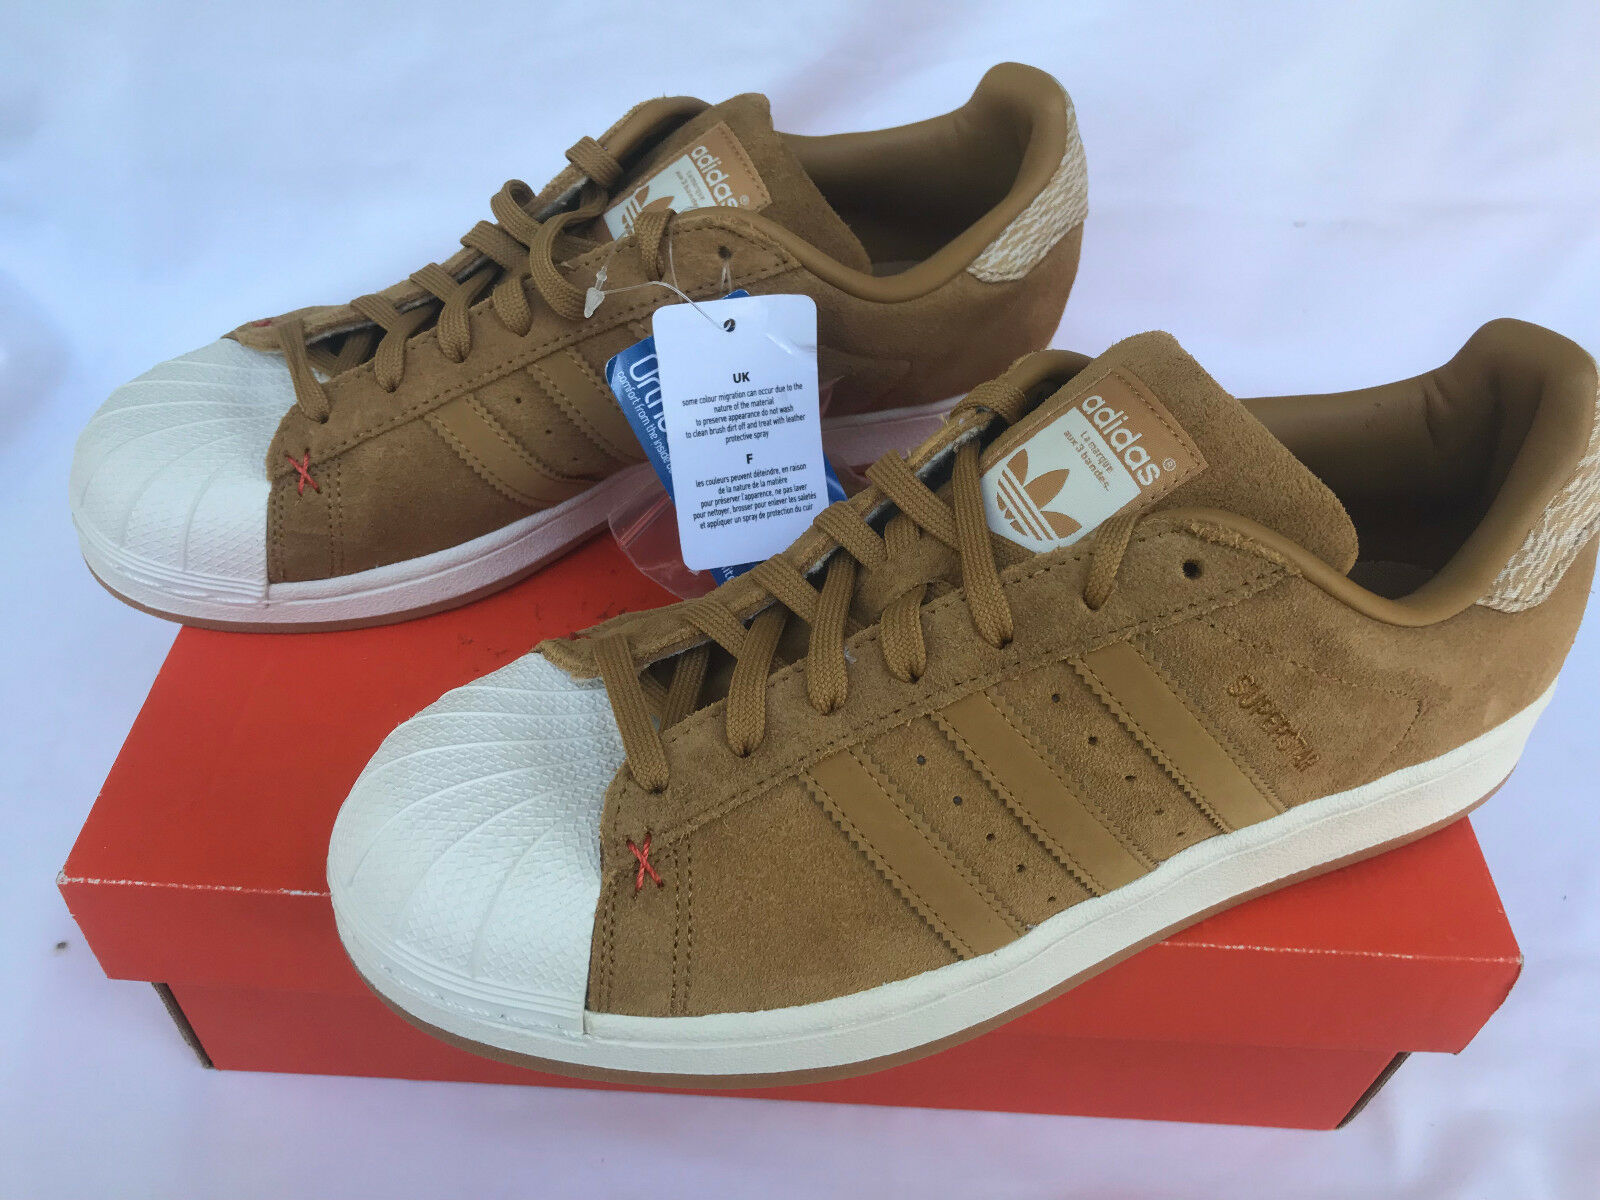 adidas superstar b27574 winter männer mesa wildleder - schuhe basketballsneaker männer winter 10 b92140